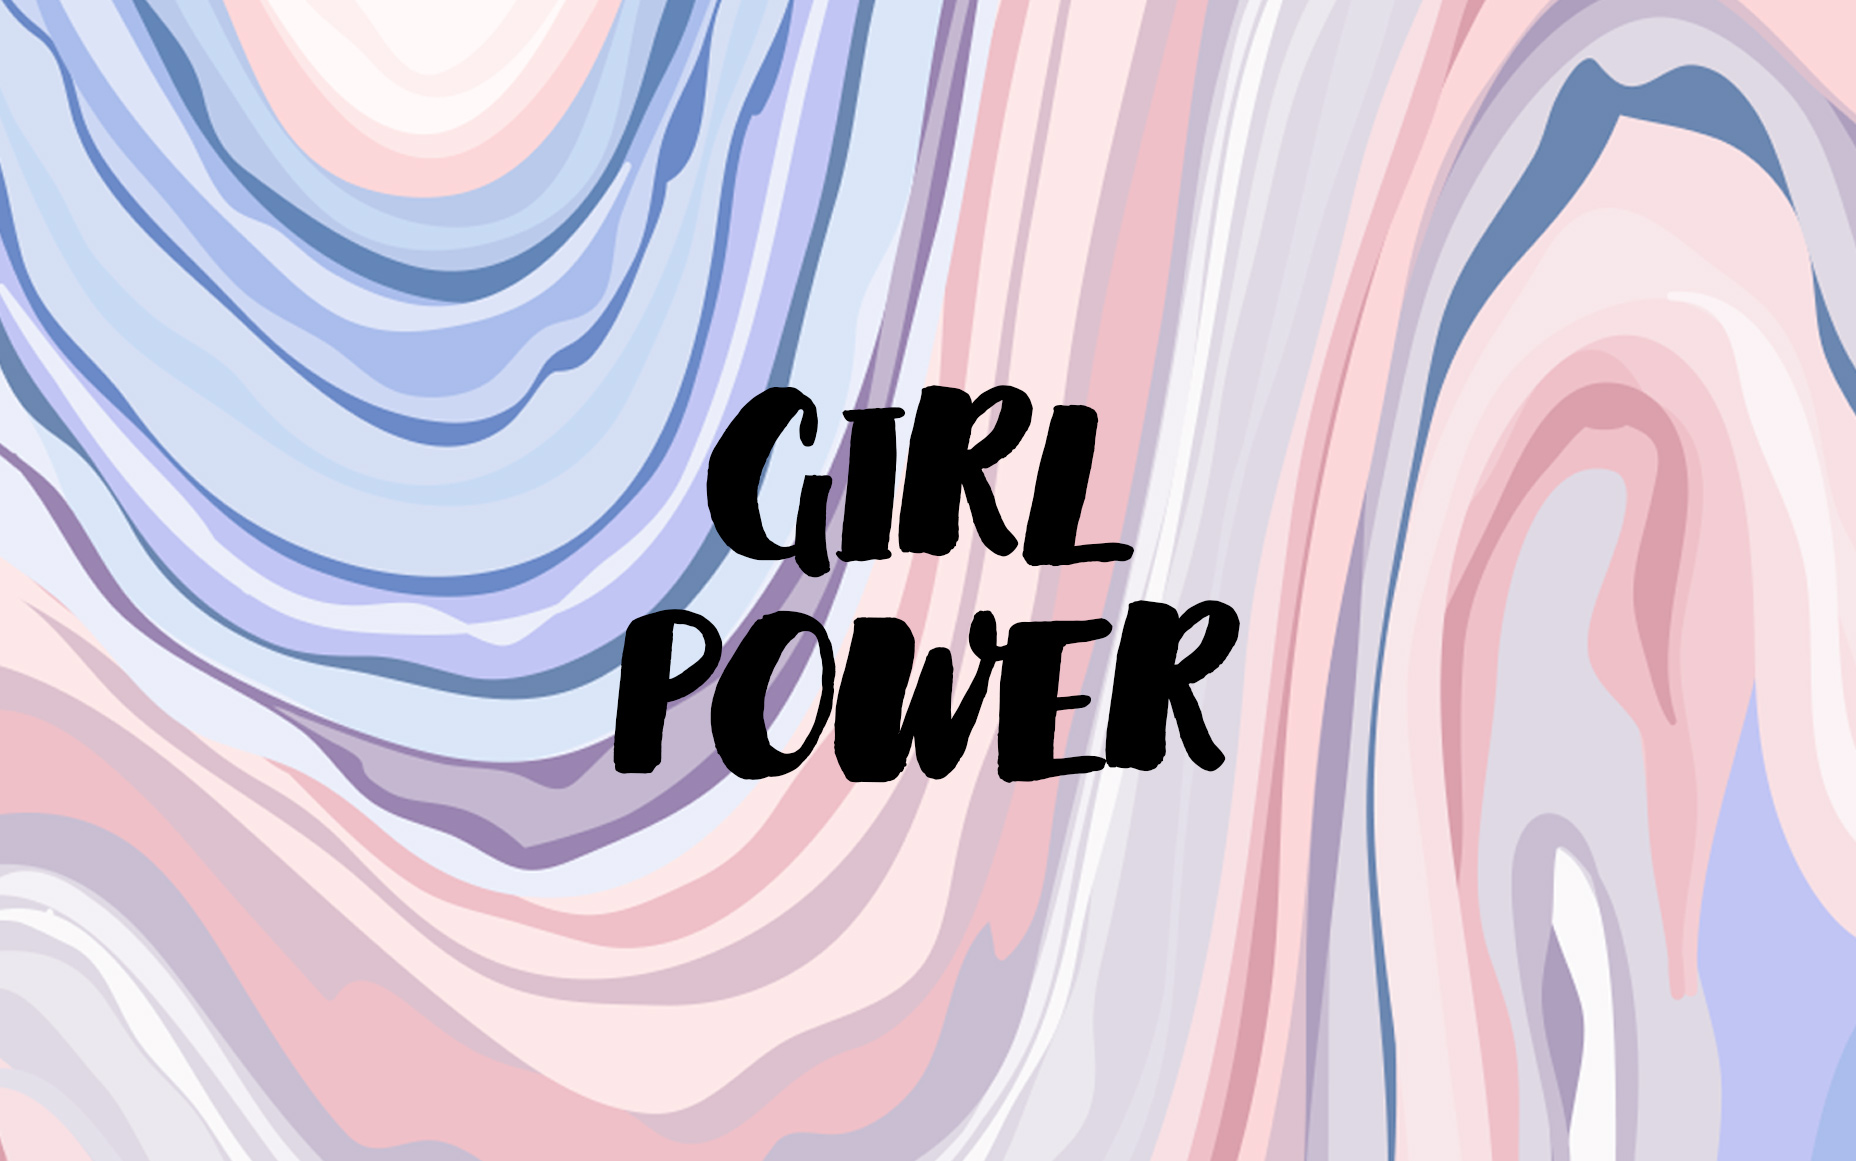 Really Cute Teal Teal Wallpaper Mantra Monday Girl Power Days Like Laura